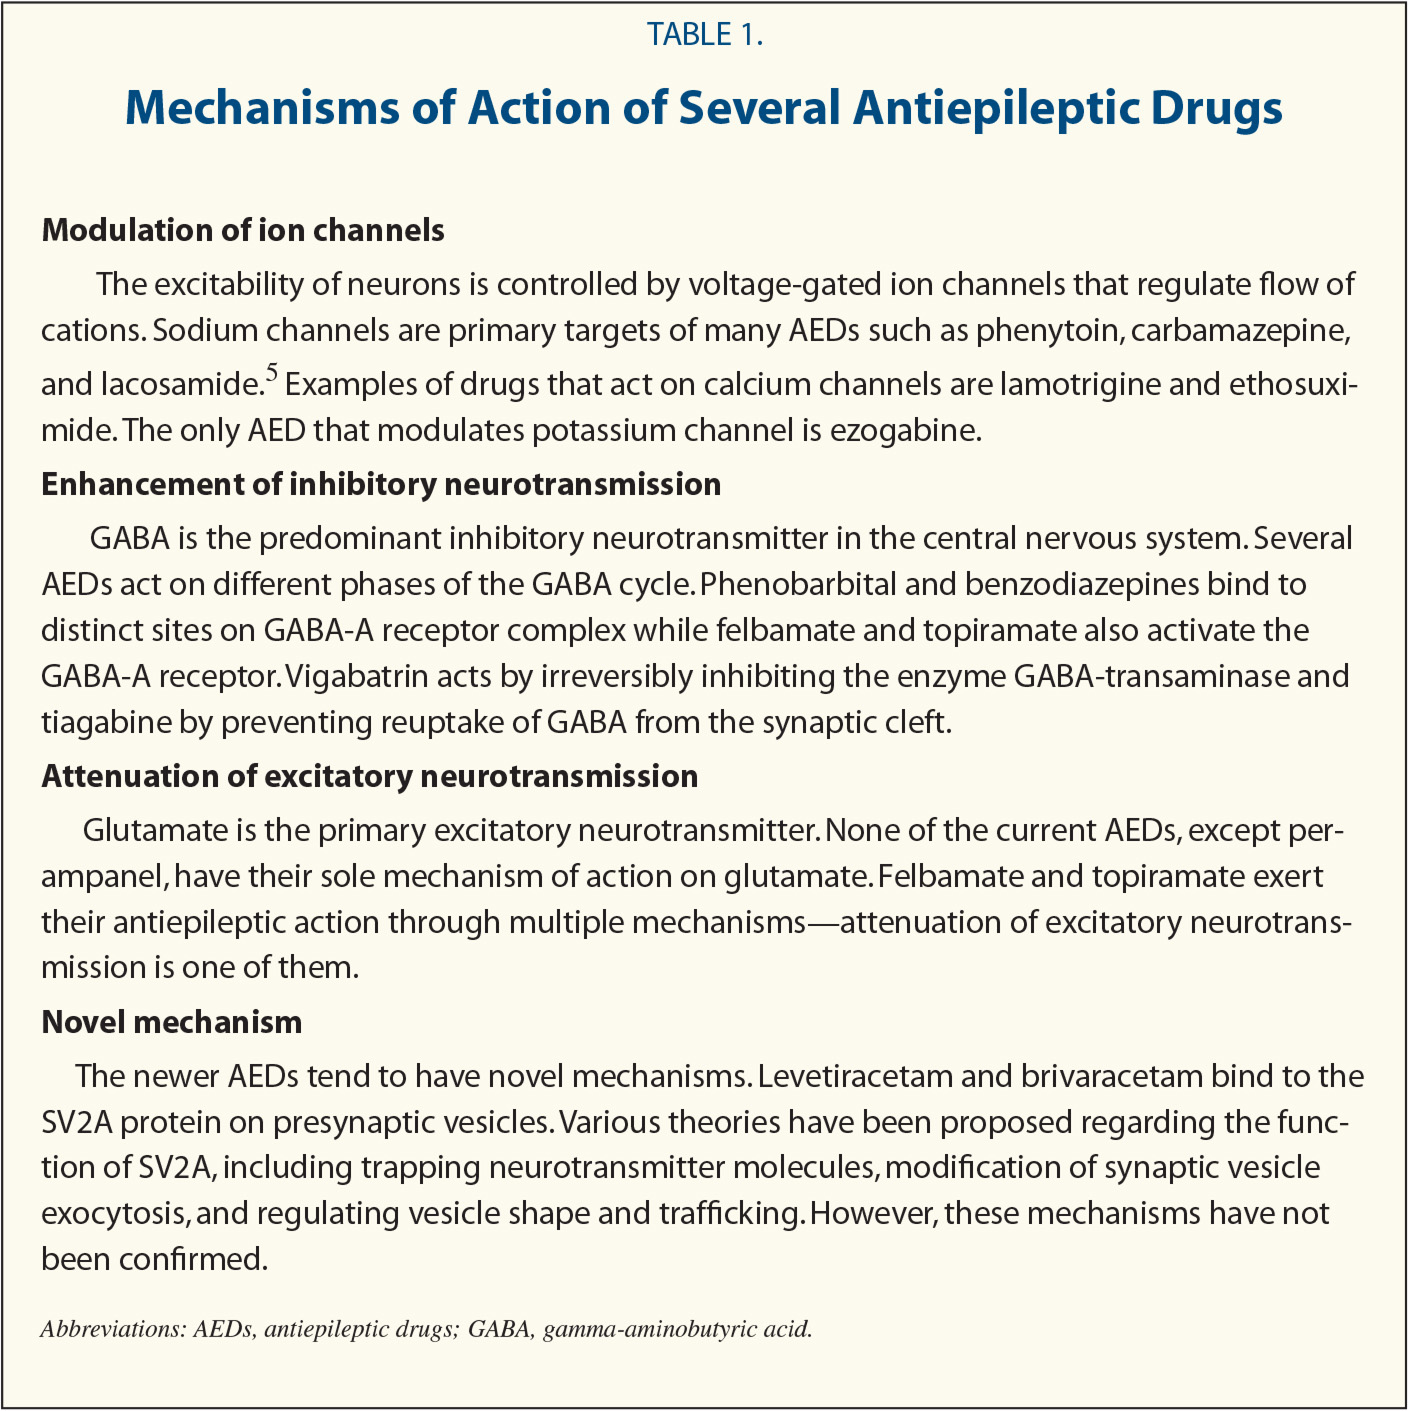 Mechanisms of Action of Several Antiepileptic Drugs